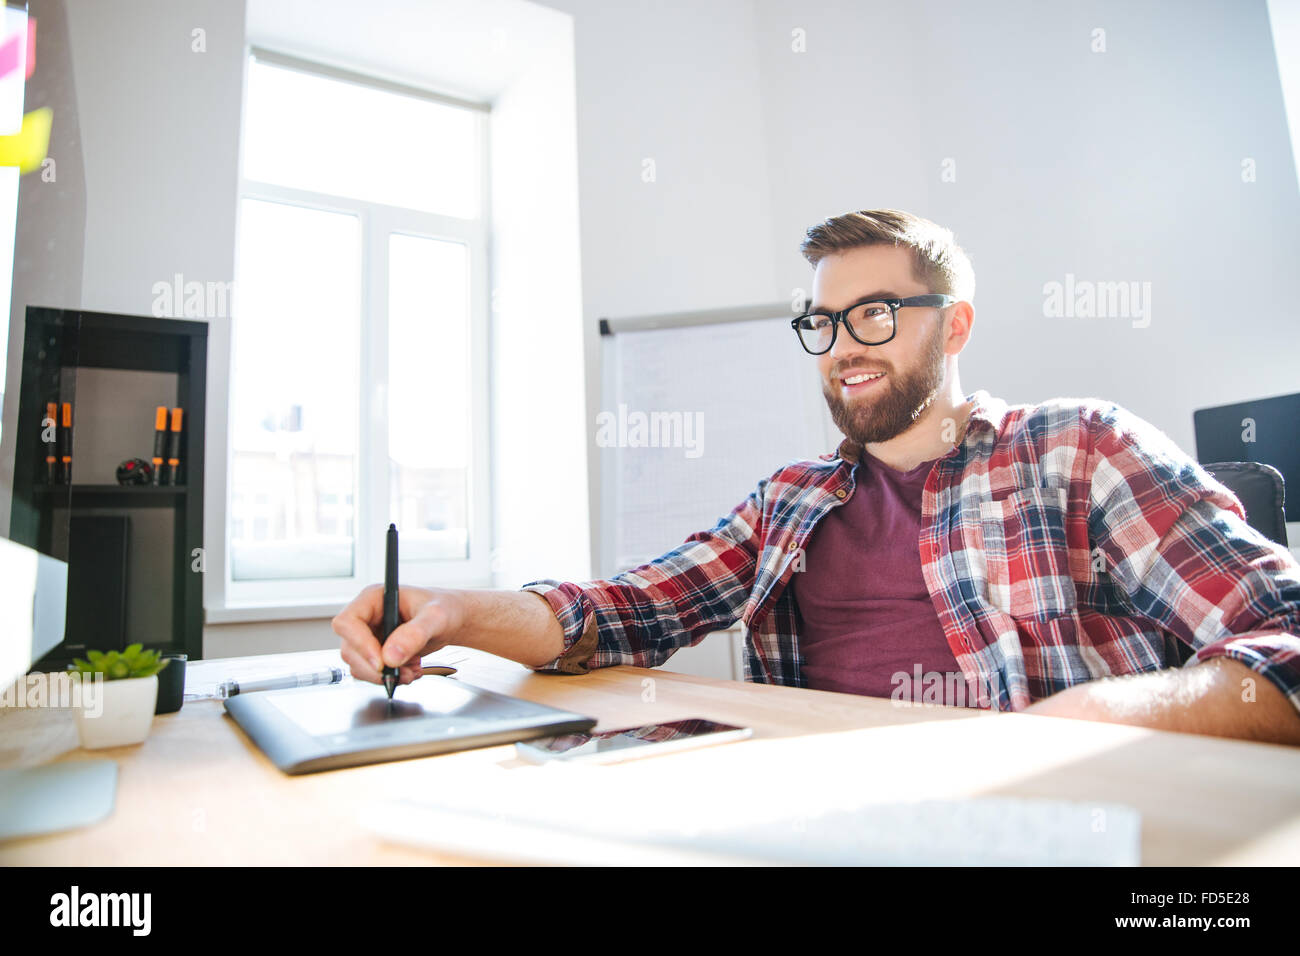 Smiling handsome young bearded designer in checkered shirt and glasses drawing and using graphic pen tablet and - Stock Image